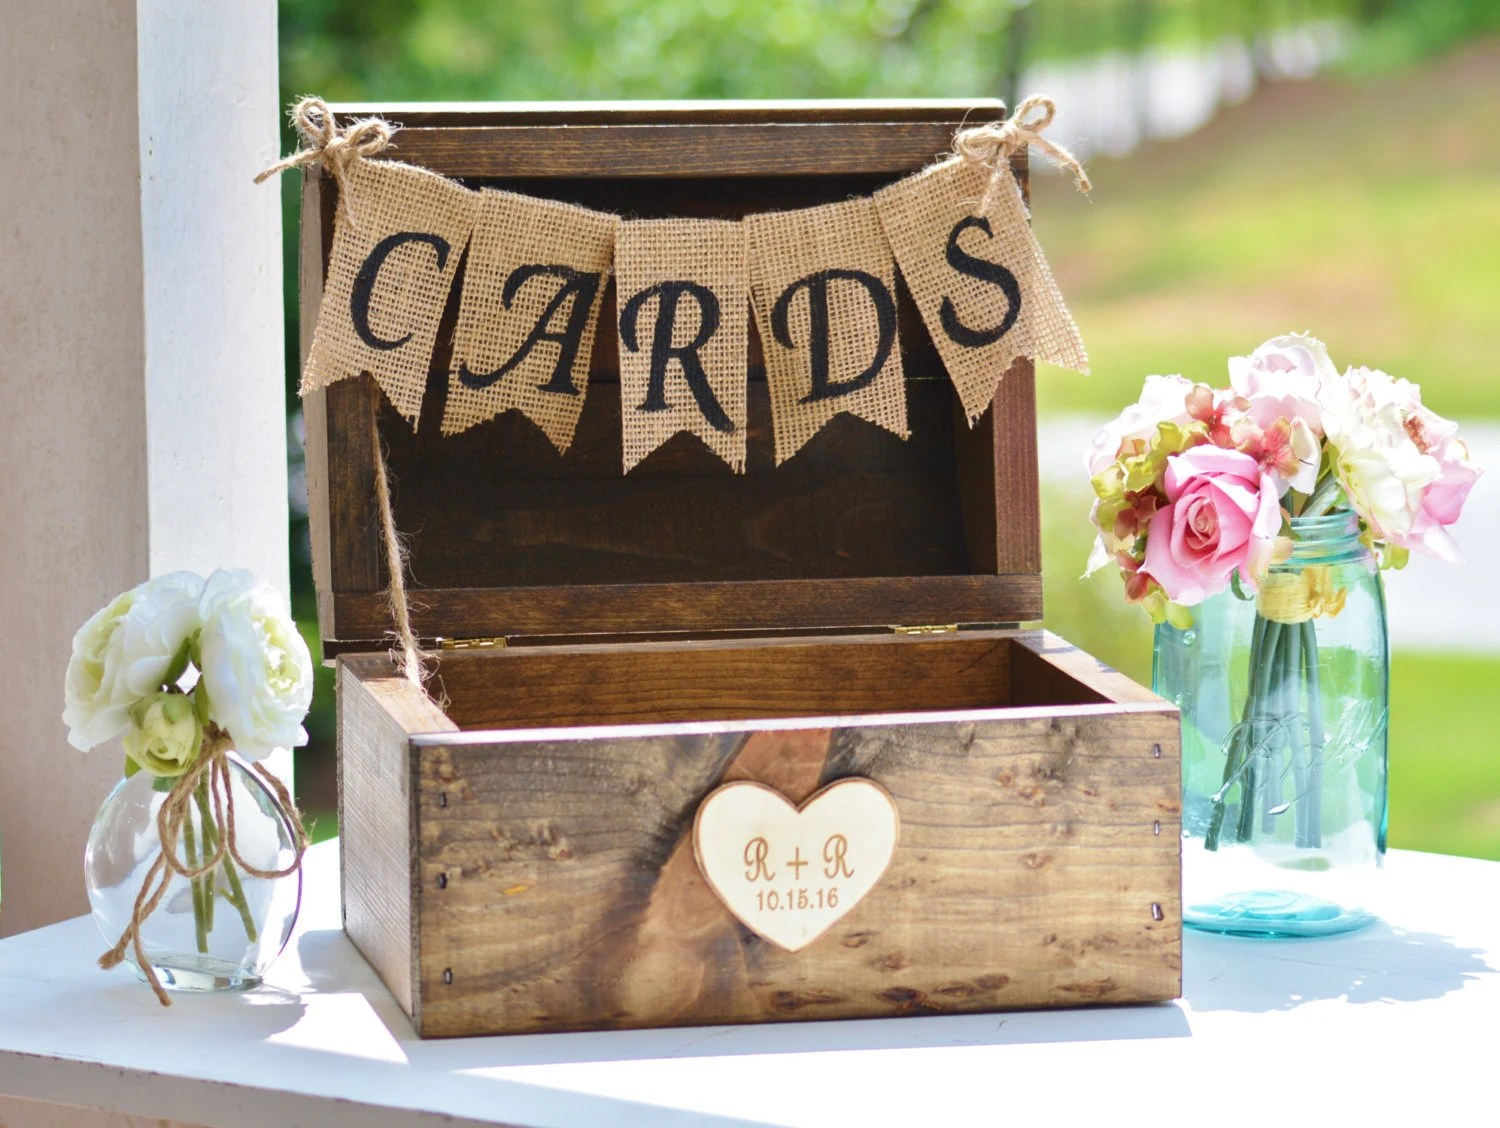 Ideas For Gift Table At Wedding Reception